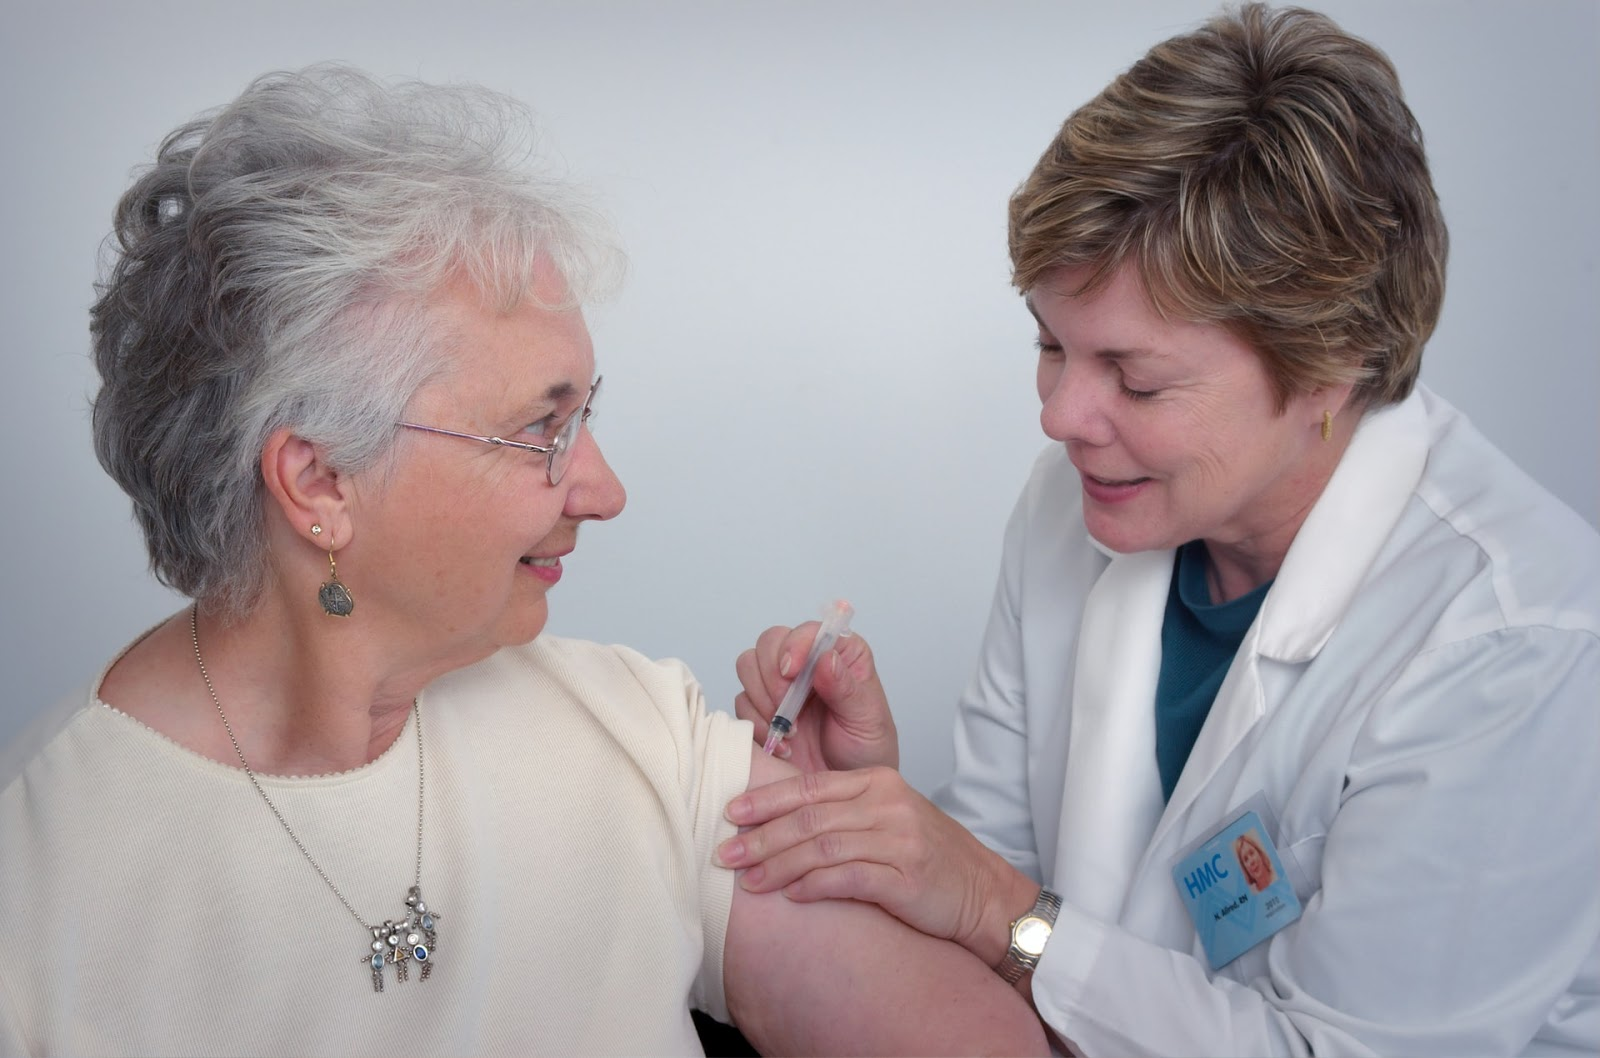 female physician giving patient a shot